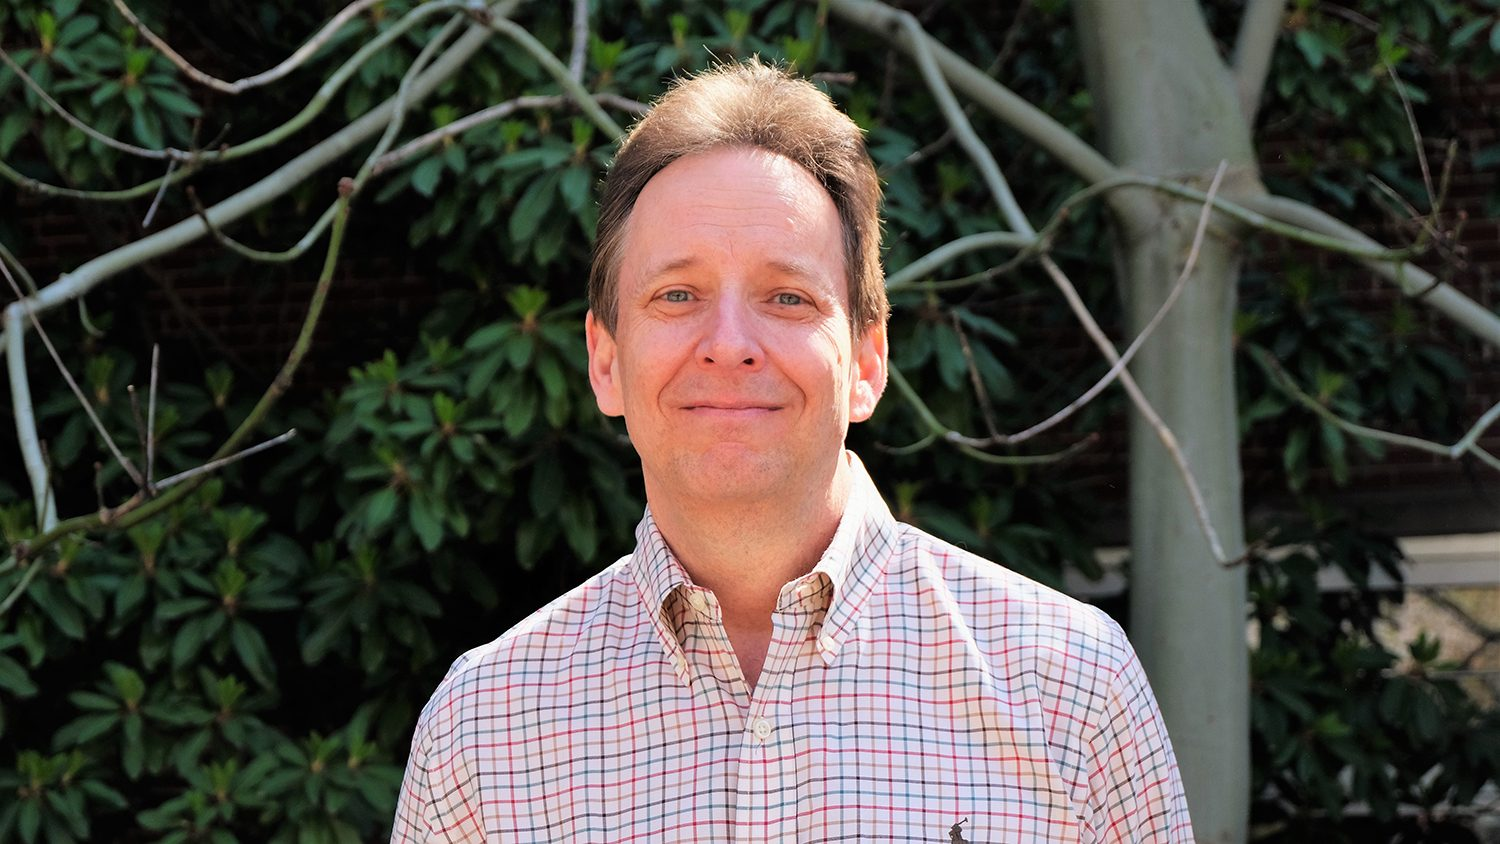 Head and shoulders photo of Barry Goodwin outside.